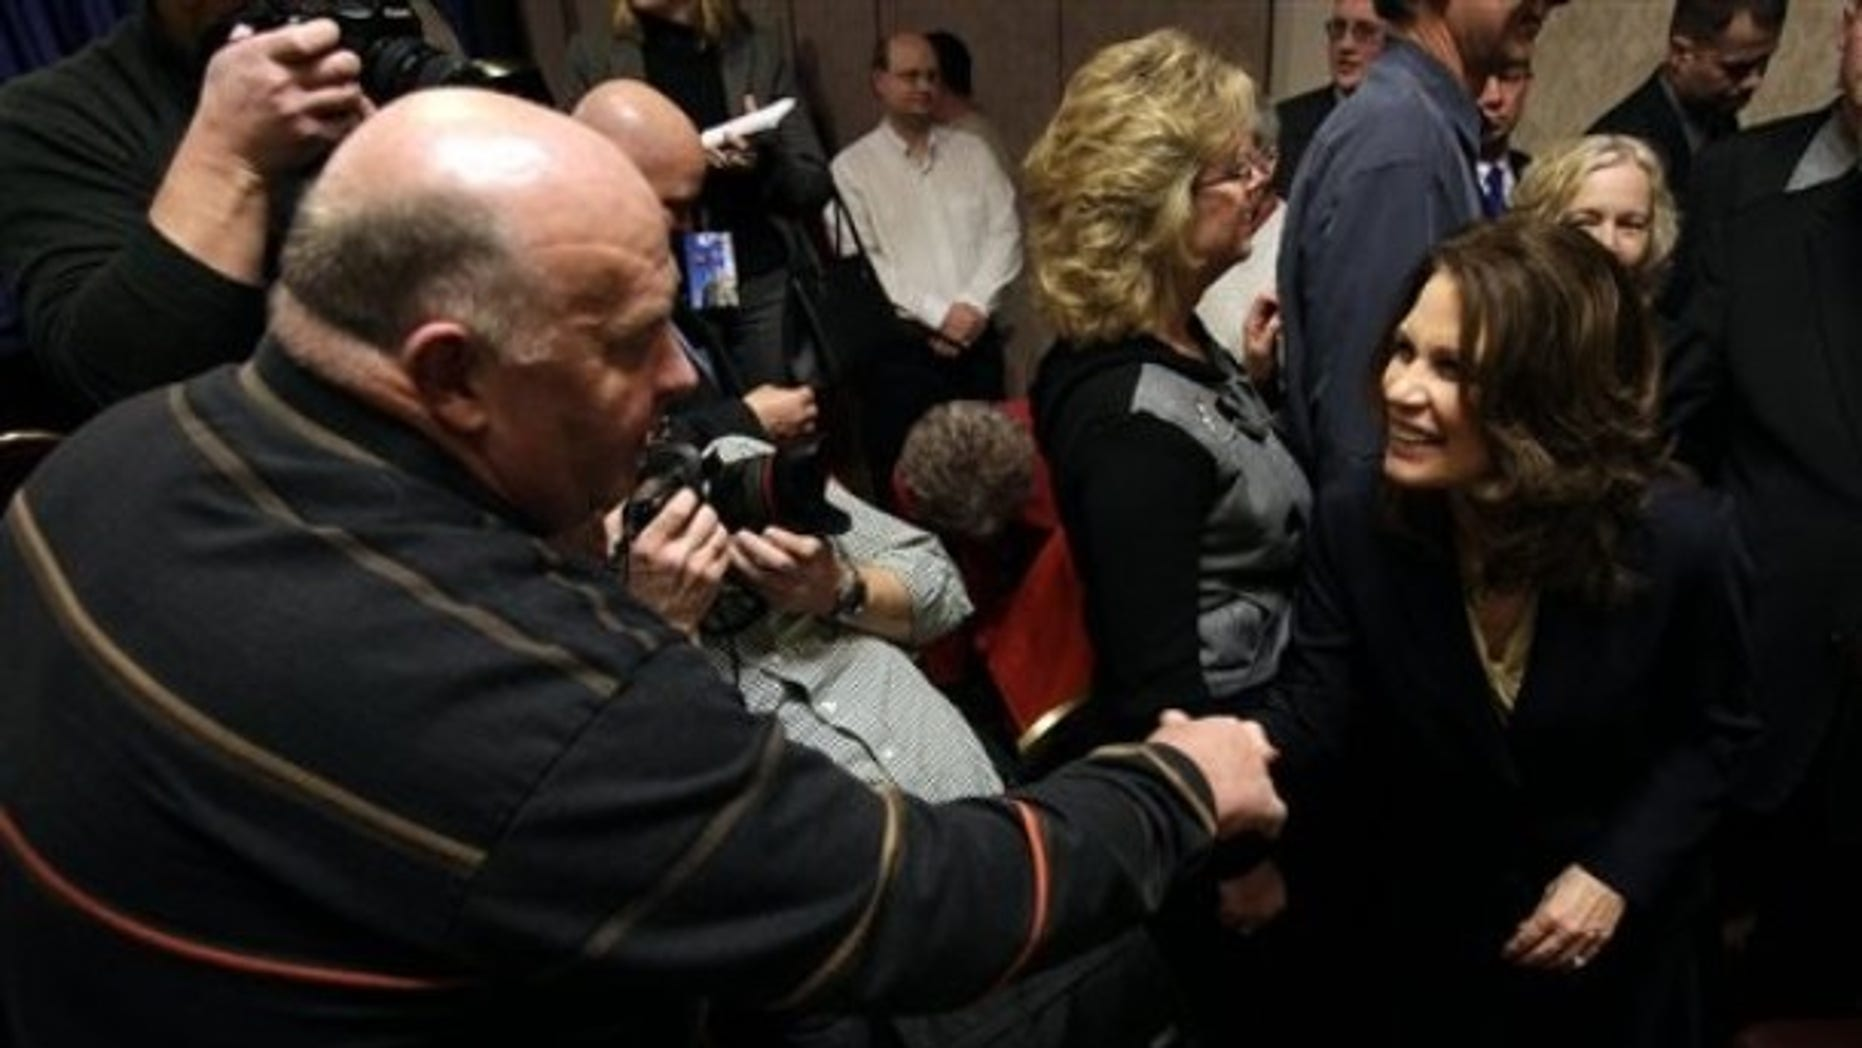 In this Jan. 21, 2011 file photo, U.S. Rep. Michele Bachmann, R-Minn. , greets Jim Ervin, of Urbandale, Iowa, left, after speaking at a reception by the Iowans for Tax Relief in Des Moines, Iowa. (AP)